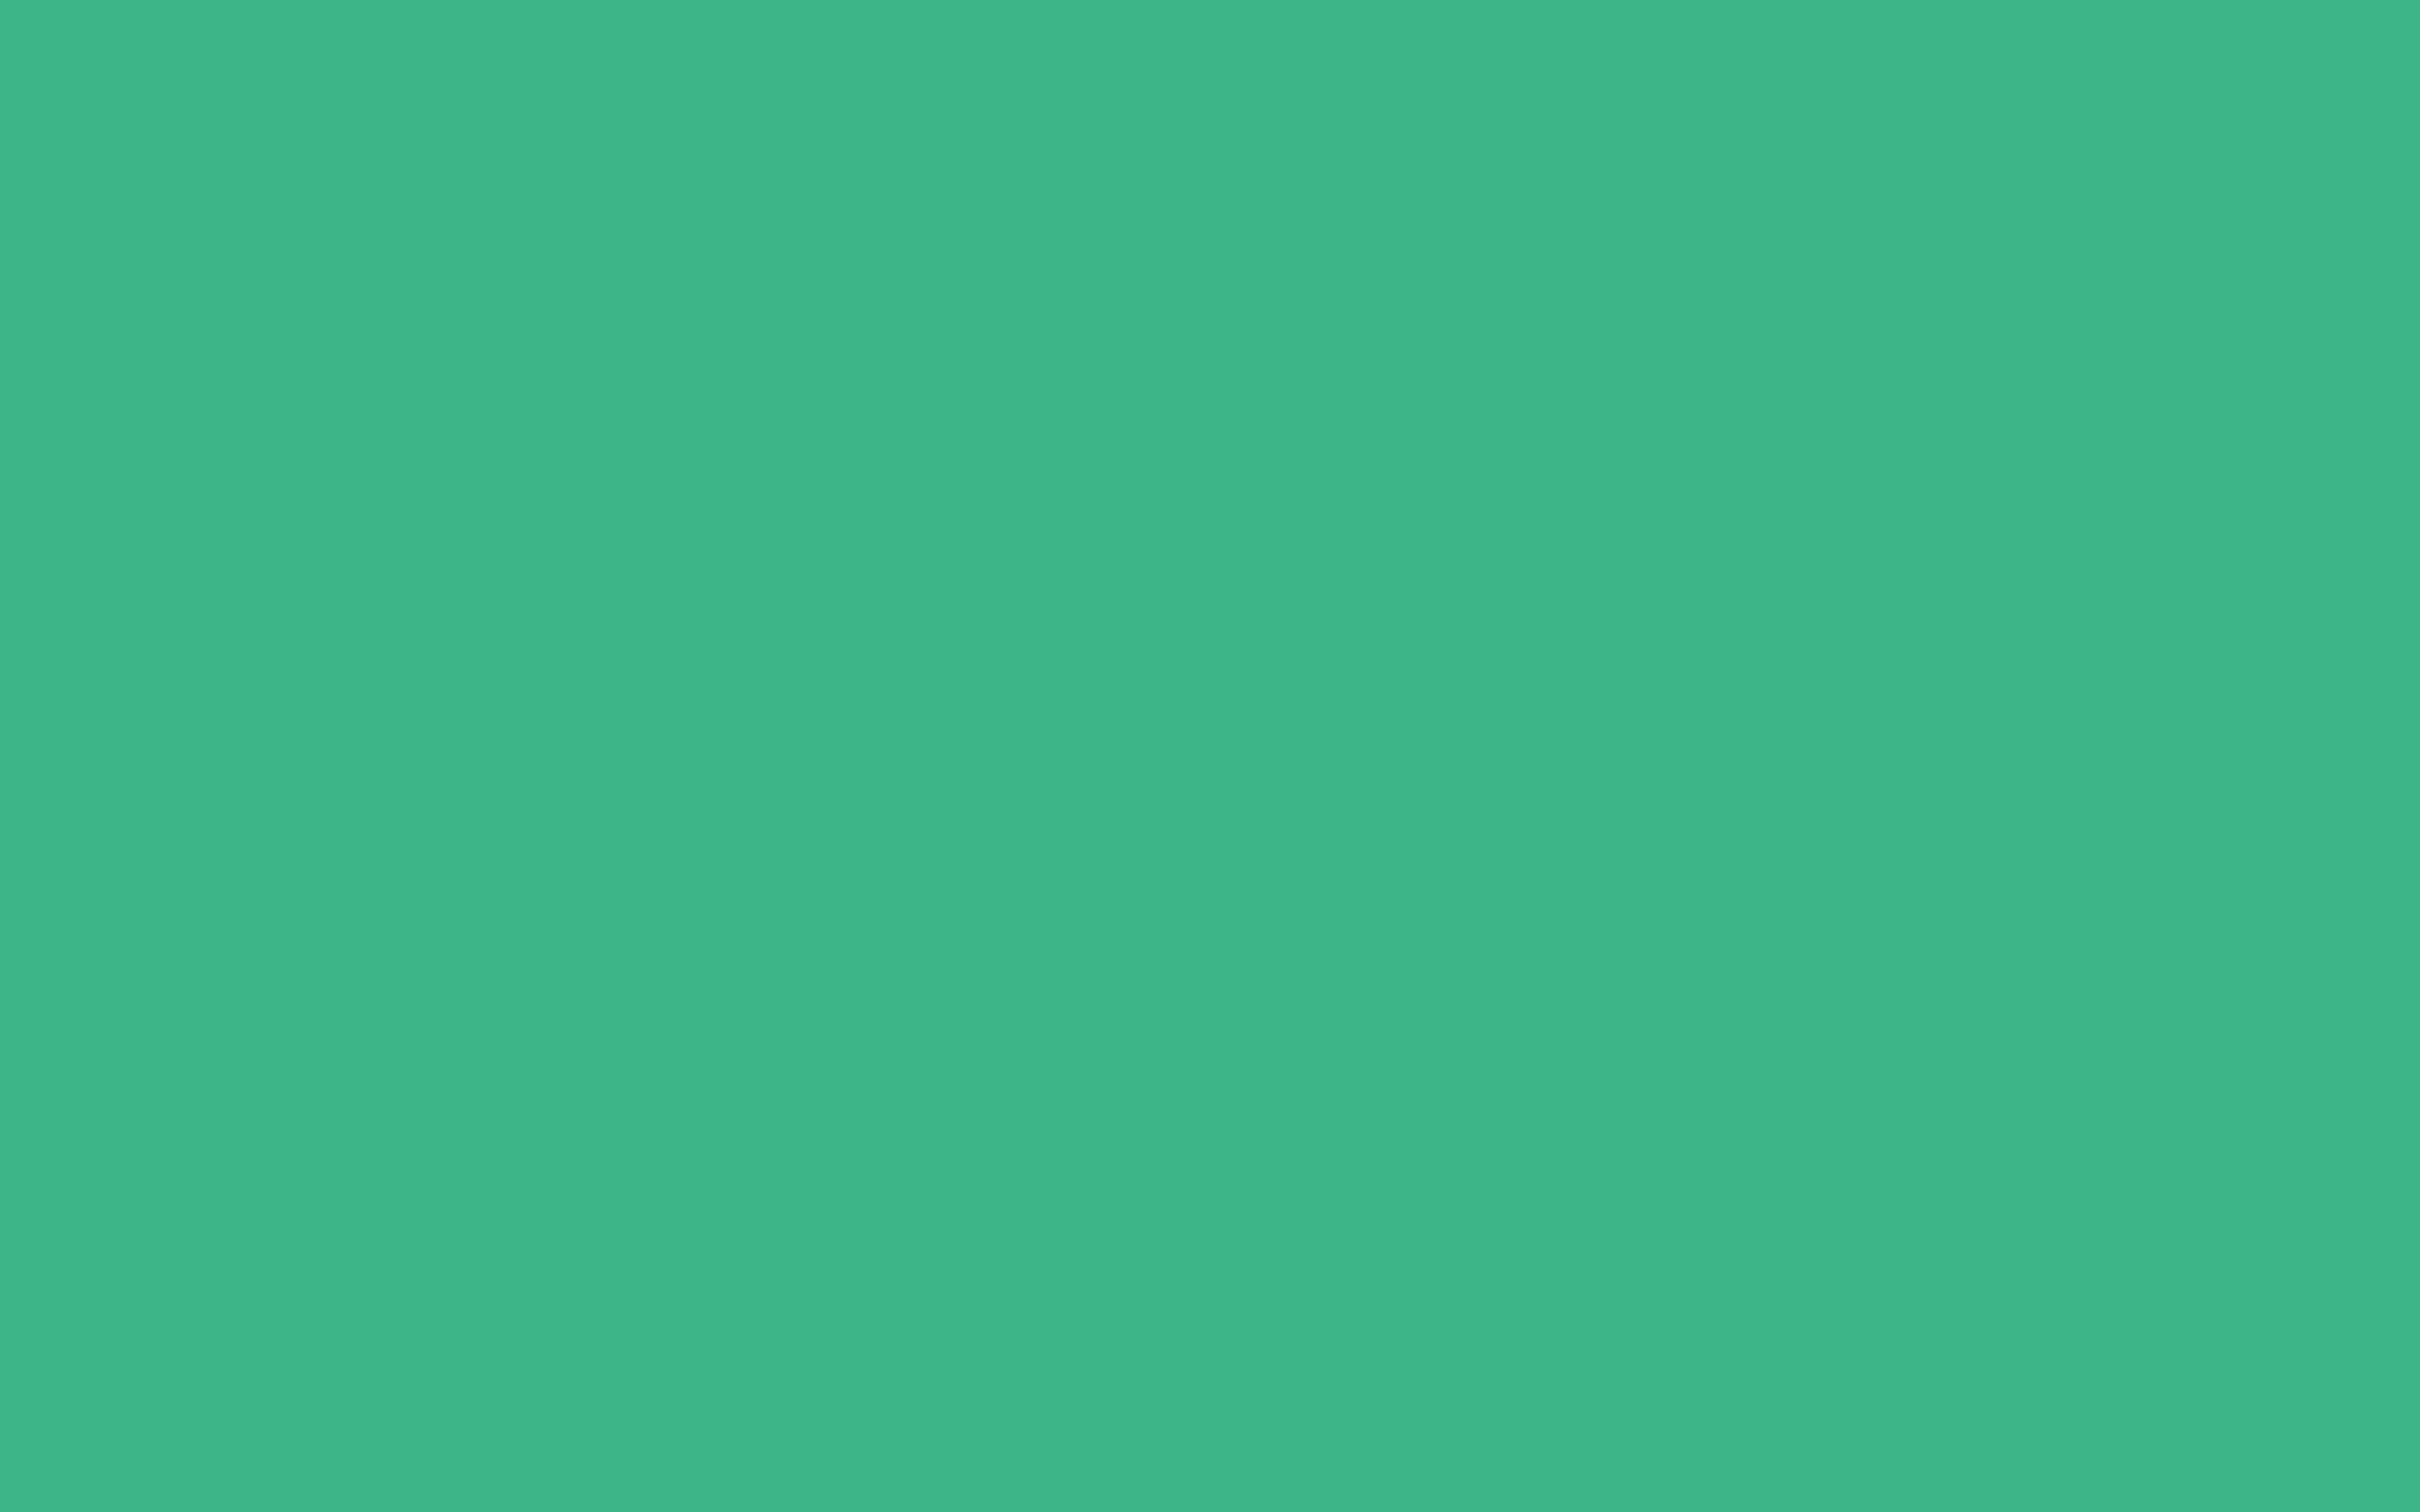 Mint Solid Color Background